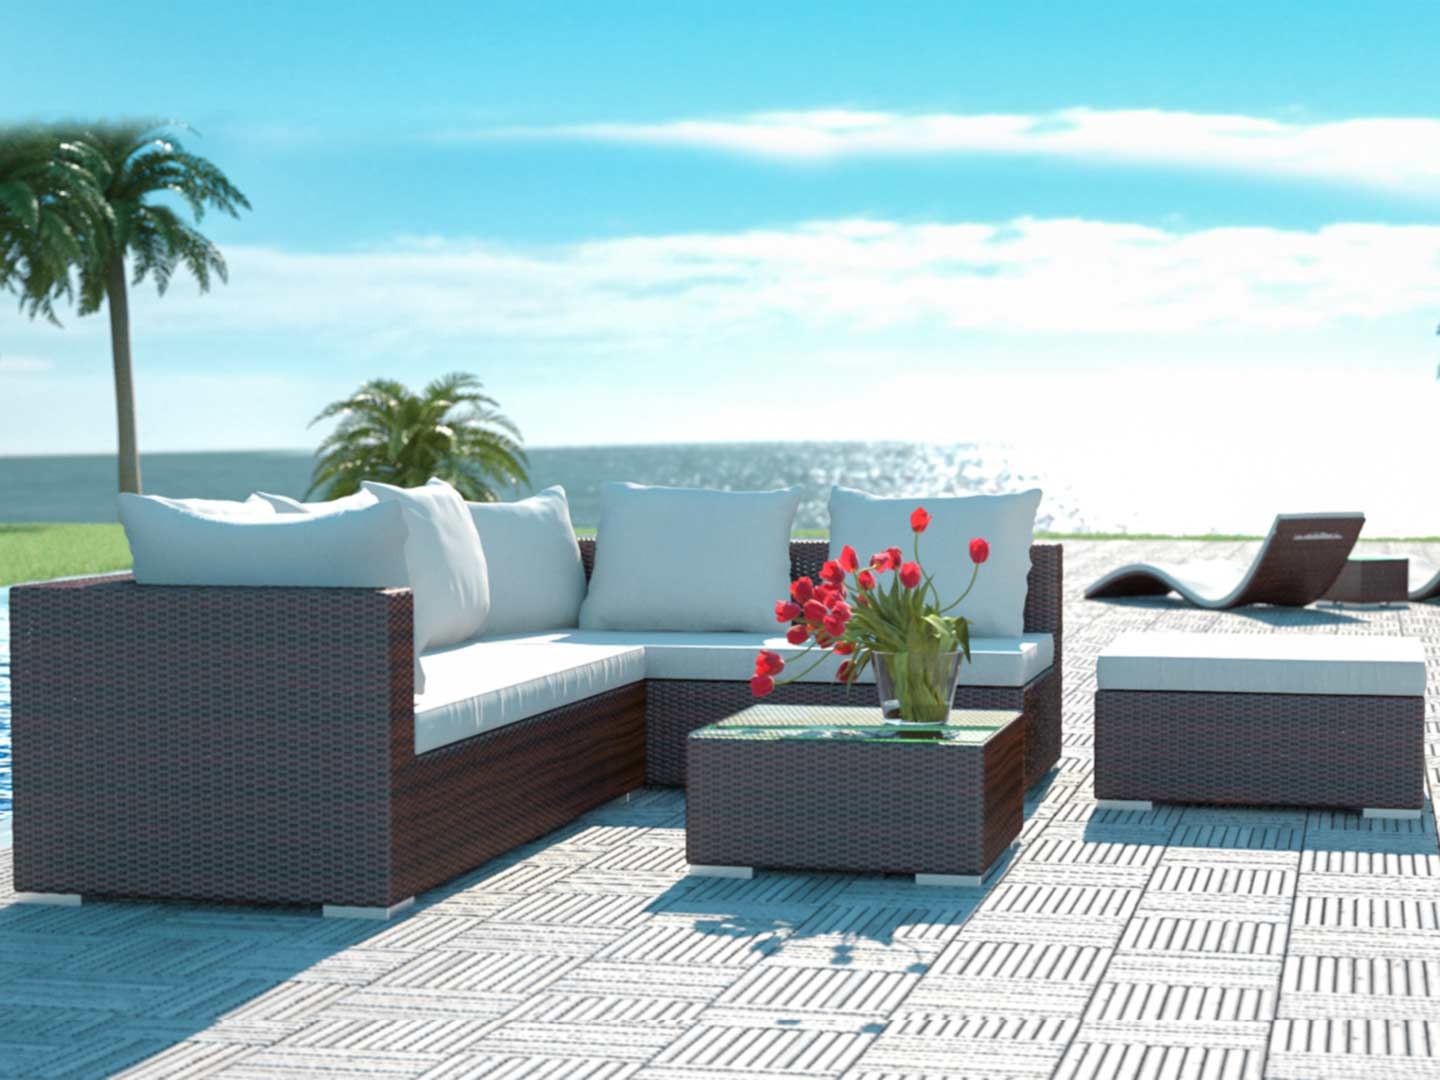 artelia austria rattan terrassensitzgruppe f r garten terrasse und wintergarten. Black Bedroom Furniture Sets. Home Design Ideas